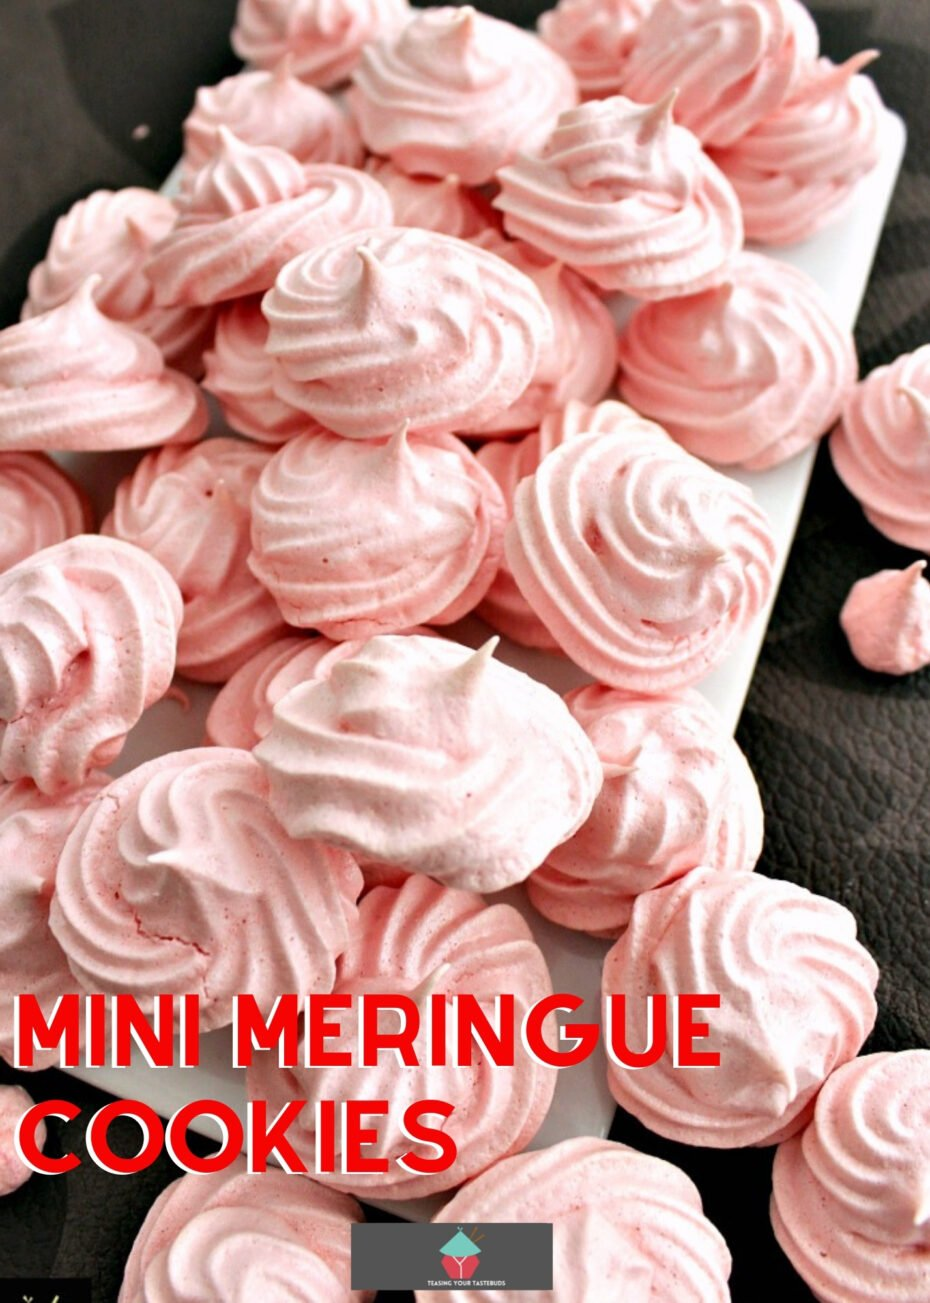 Mini Meringue Cookies! These are a wonderful sweet treat made up of just 2 ingredients. Incredibly easy to make and are perfect for adding to desserts or eating just as they are.